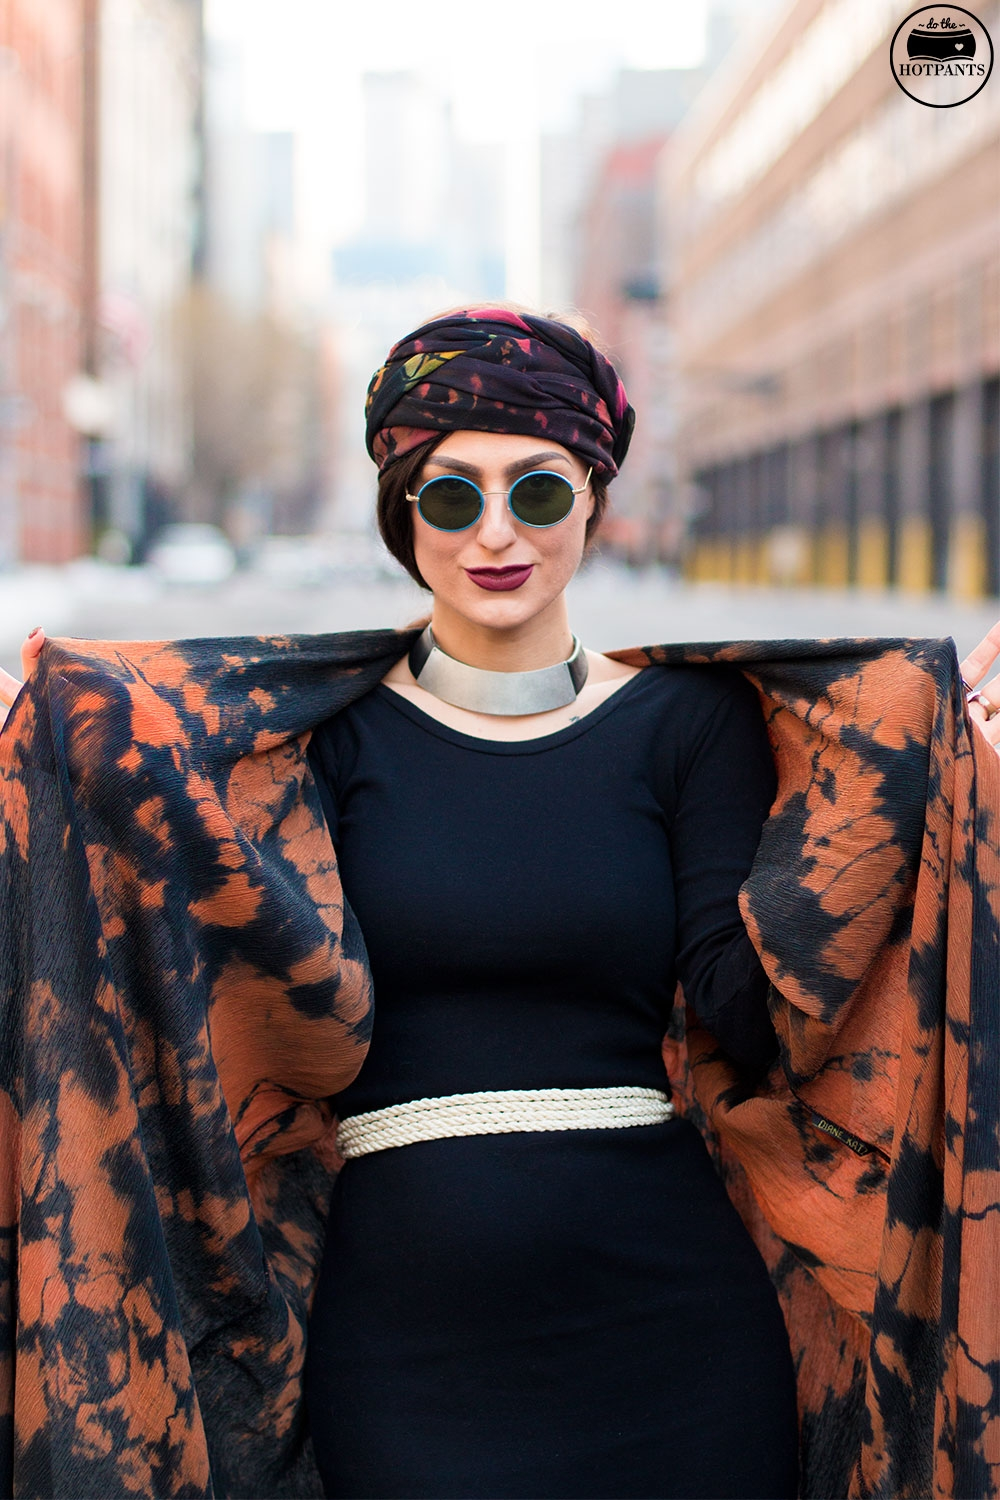 Do The Hotpants Dana Suchow Winter Fashion New York Streetstyle 2016 Tie Dye Hippy Outfit Turban Hijab IMG_6873